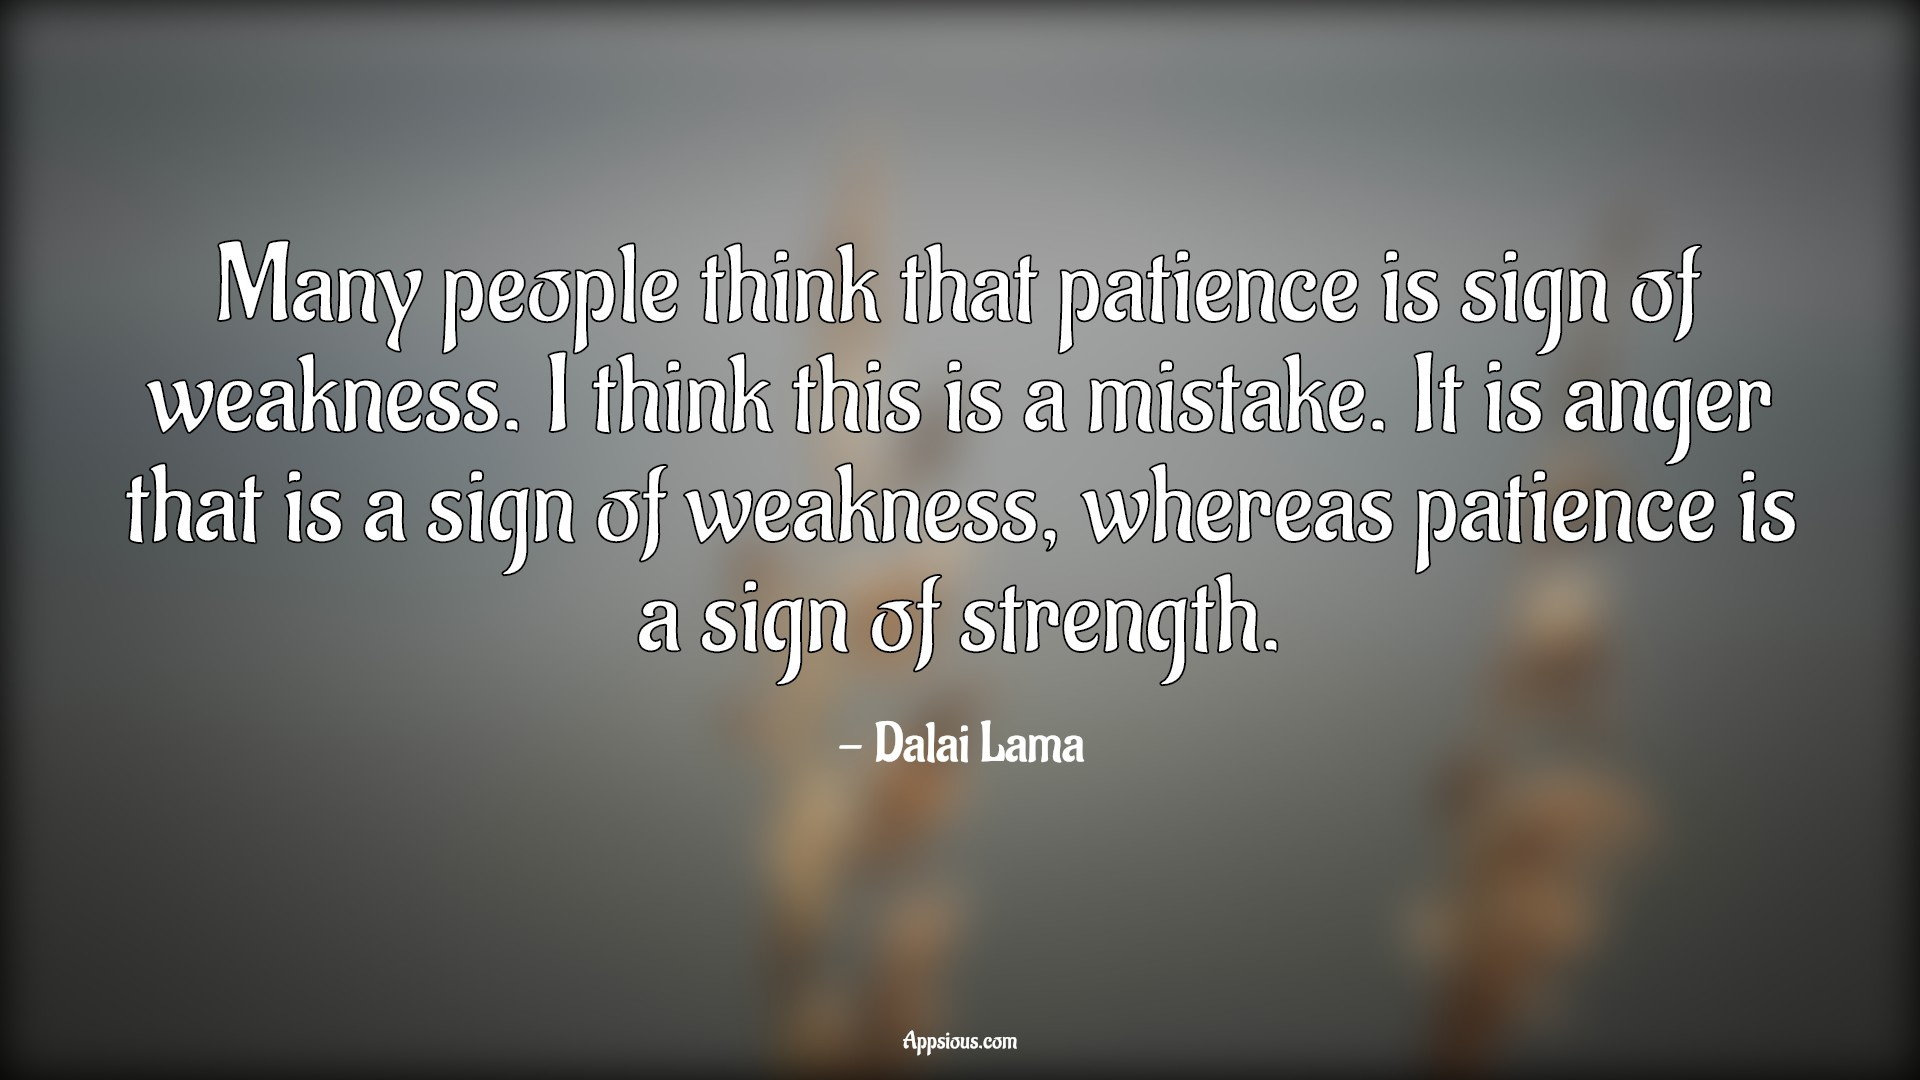 Many people think that patience is sign of weakness. I think this is a mistake. It is anger that is a sign of weakness, whereas patience is a sign of strength.